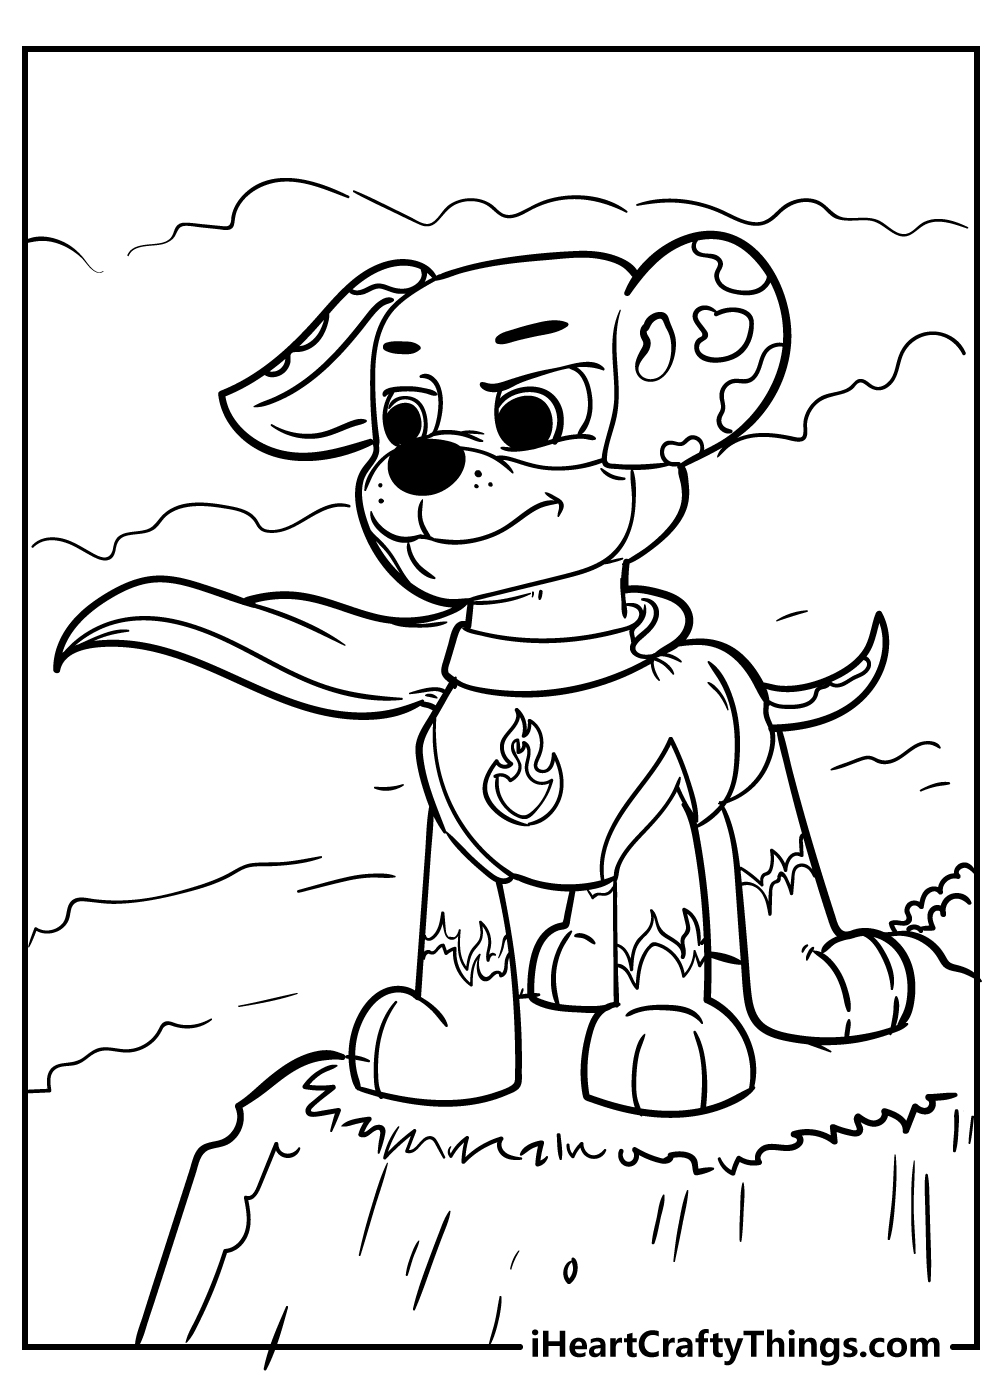 free paw patrol coloring pages for preschoolers